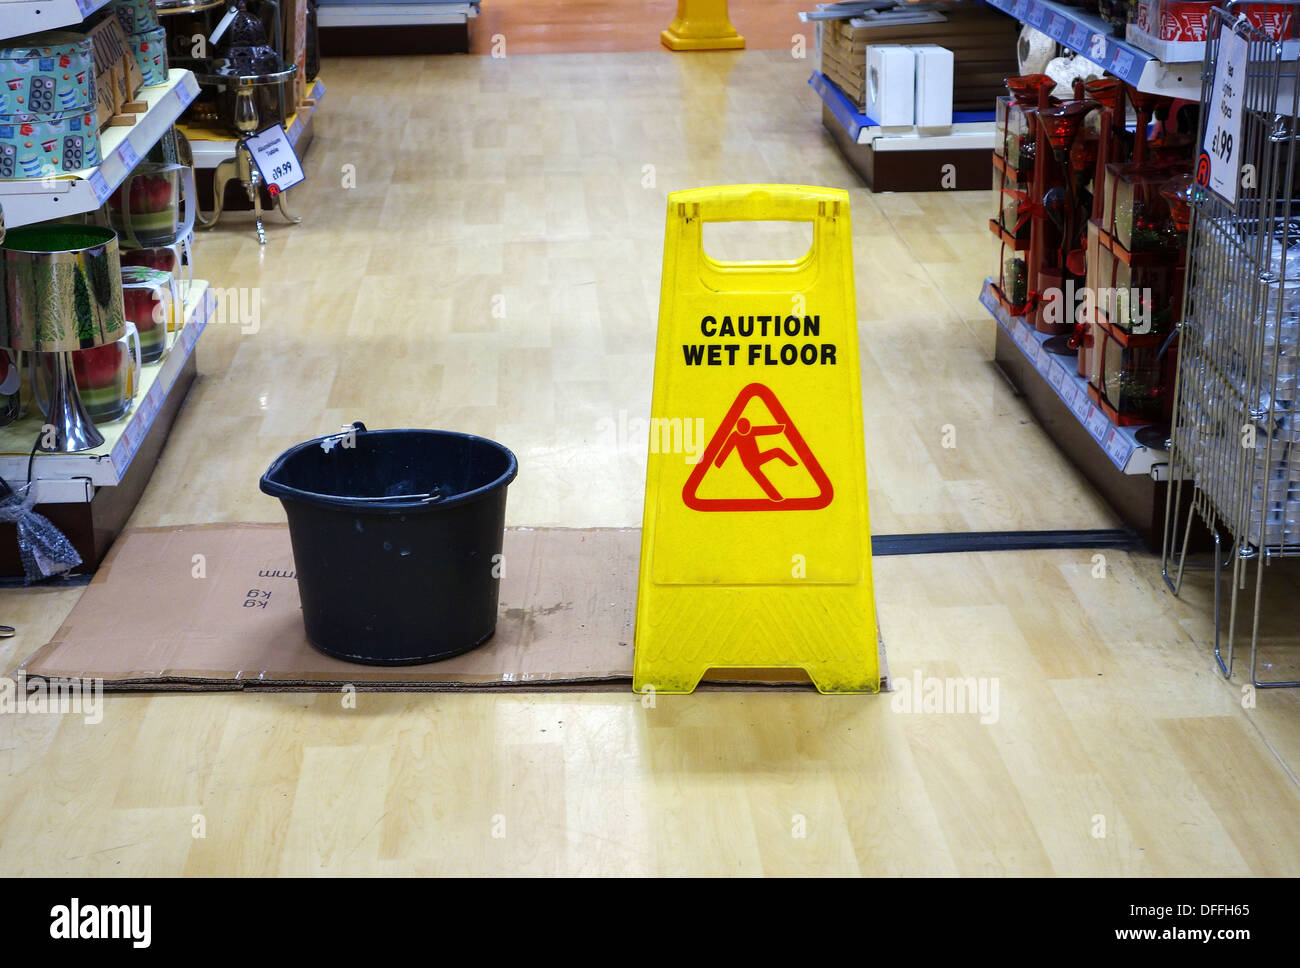 A caution ' wet floor ' notice in a store - Stock Image